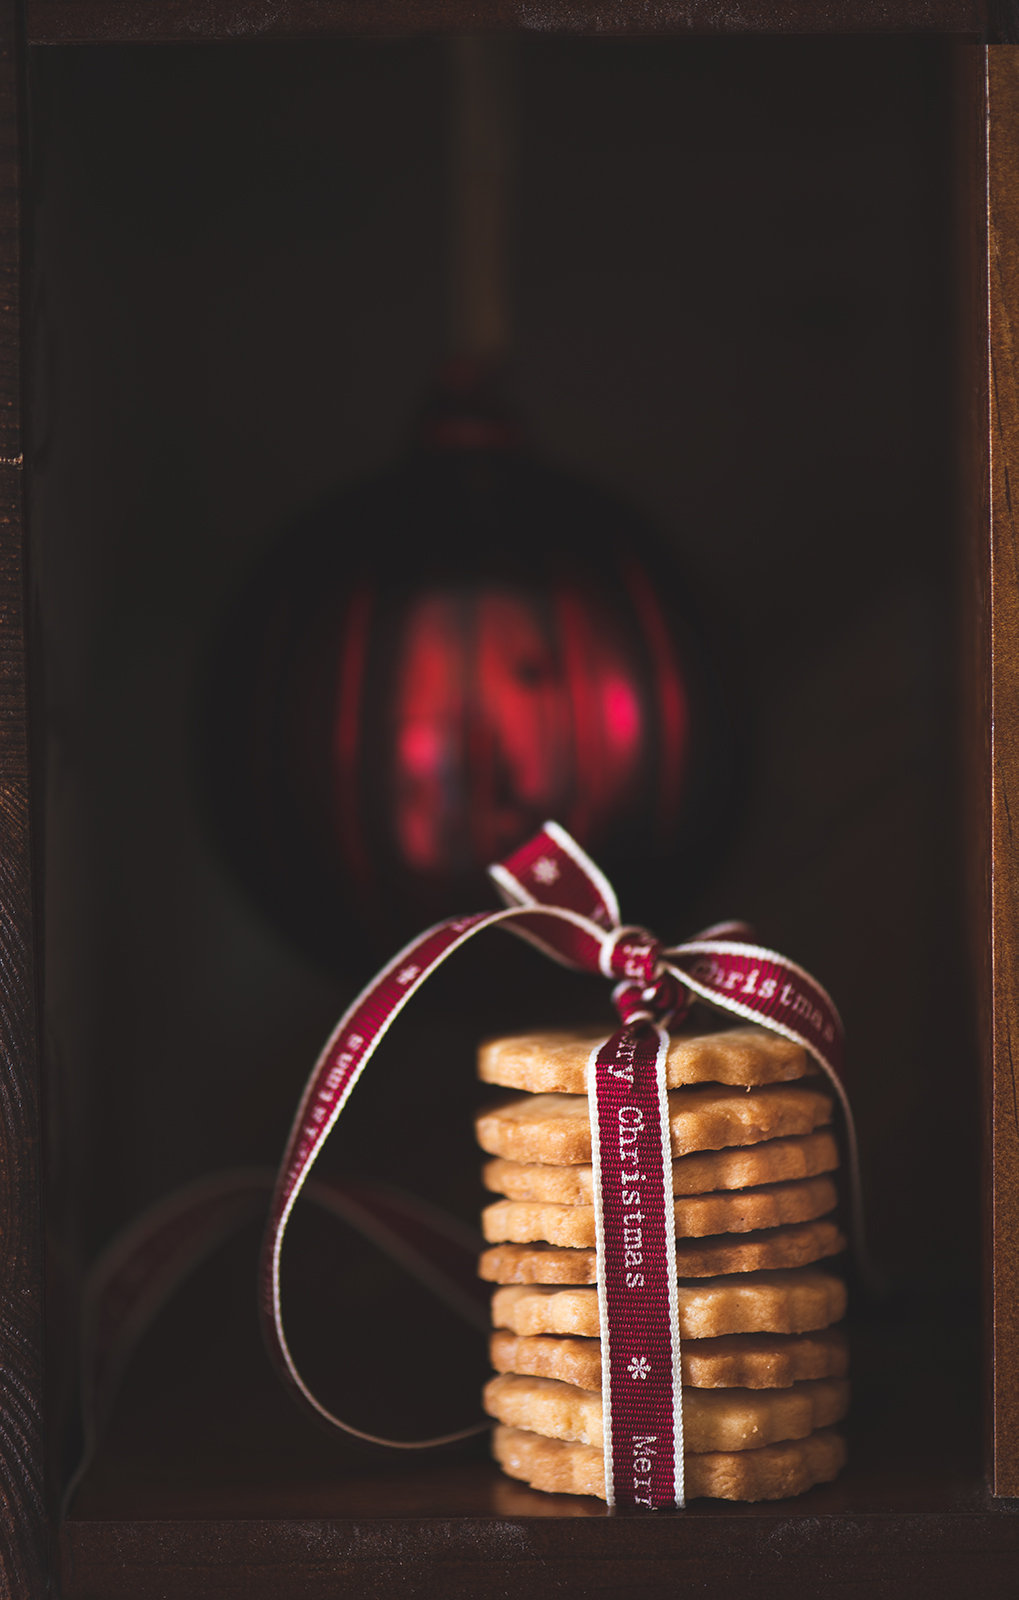 Butter Cookies are thin, melt in the mouth, buttery, crisp cookies. Butter cookies are not only easy to make, but are perfect for gifting.